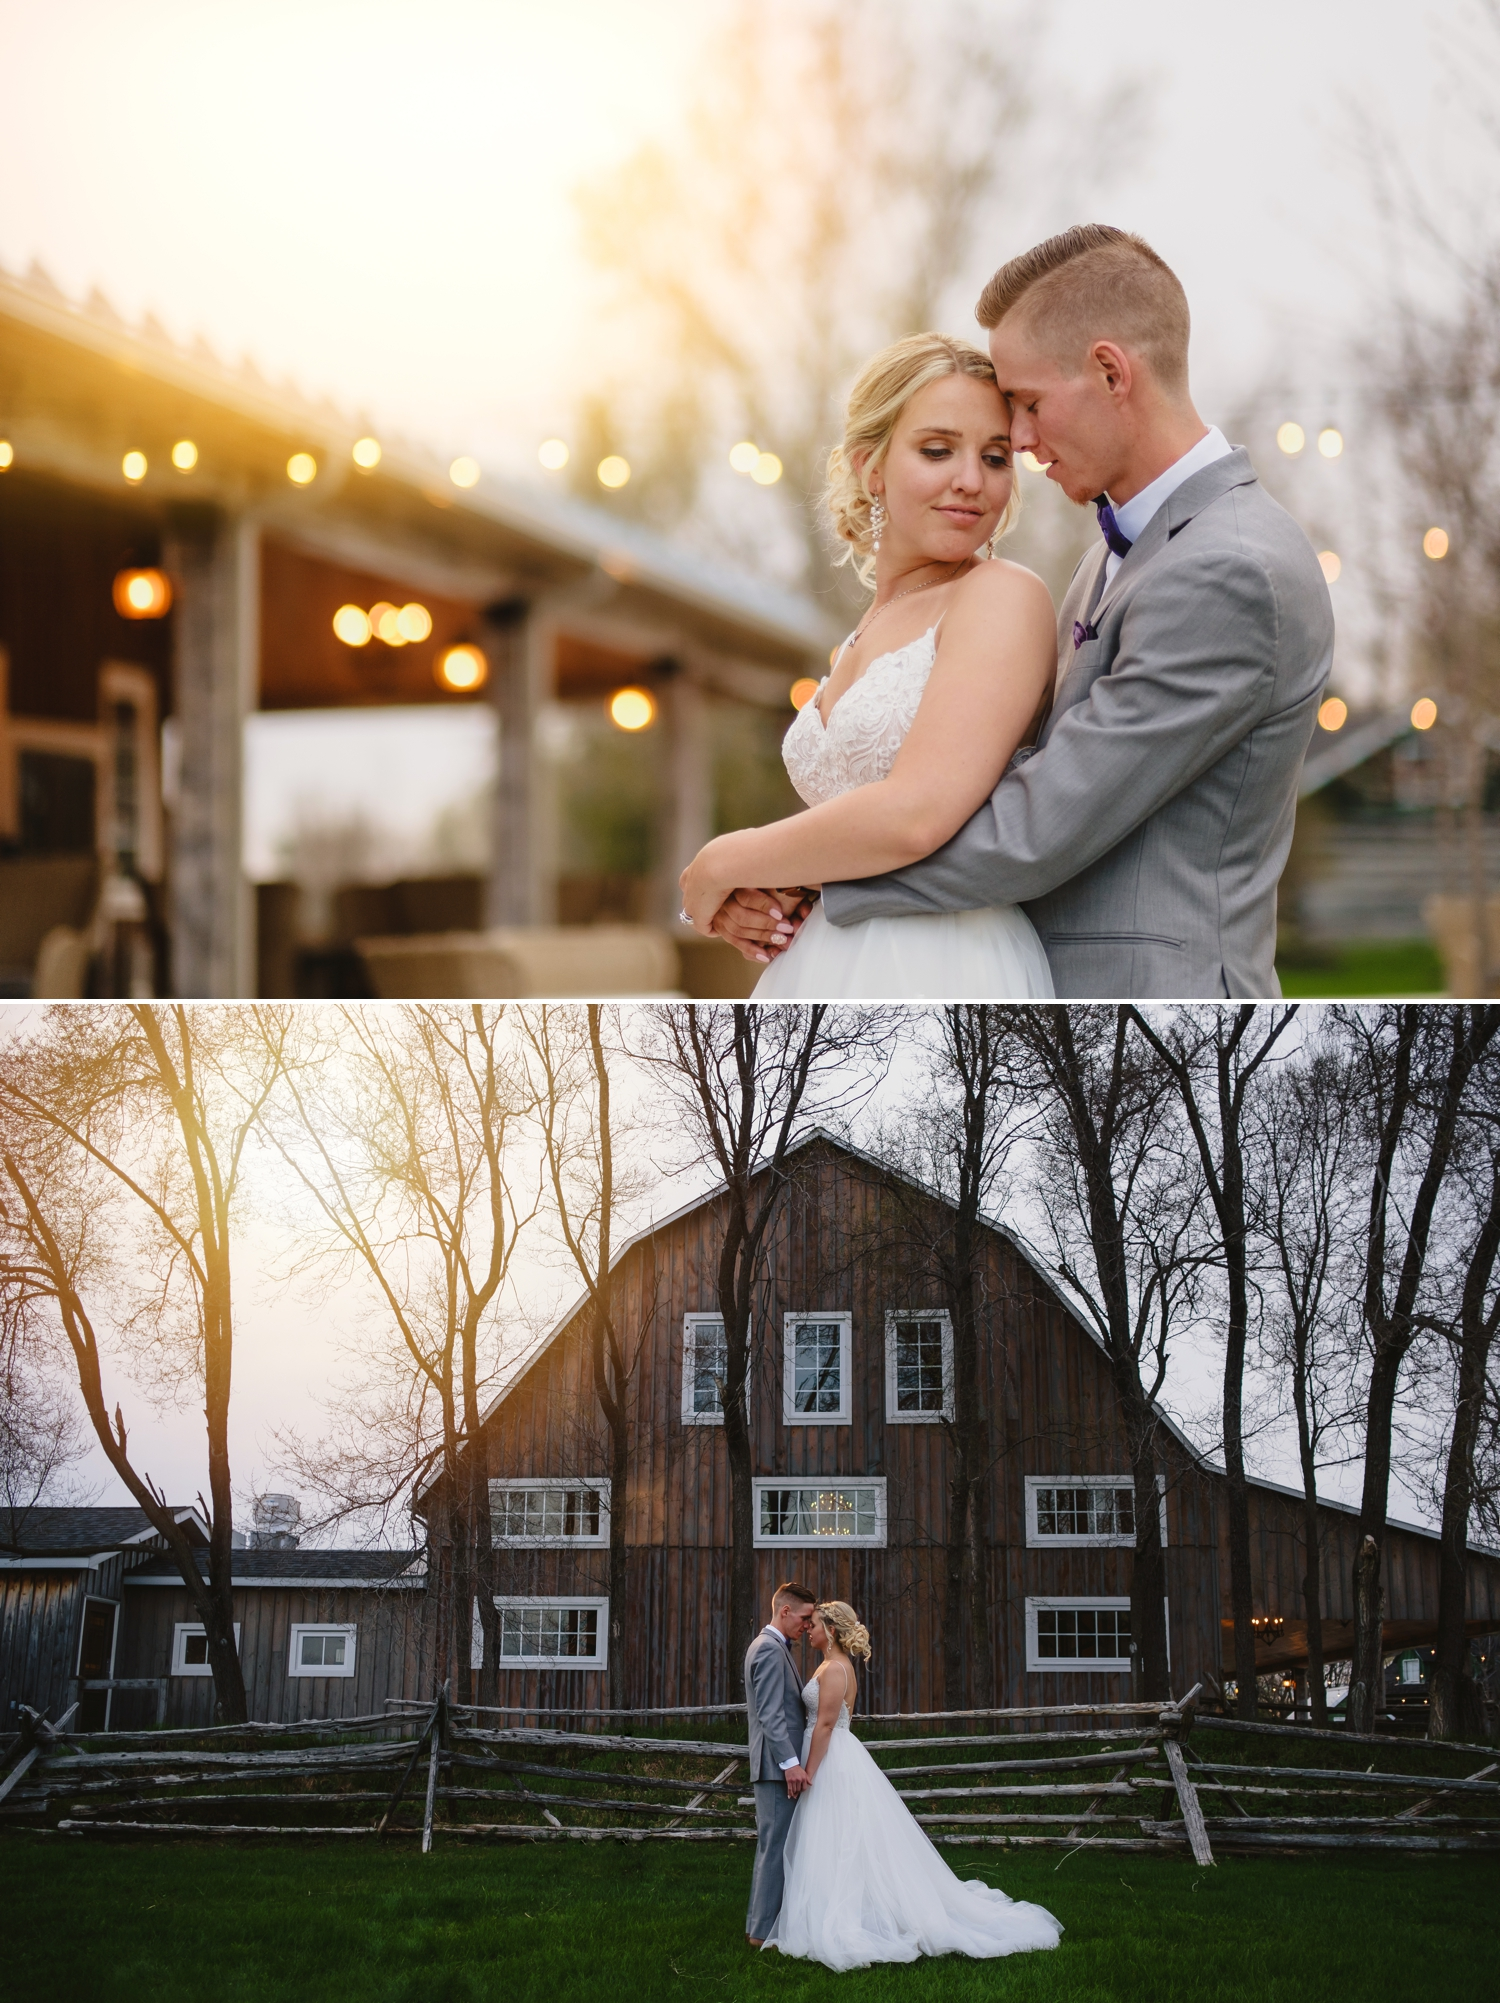 sunset portraits of bride and groom during stonefields estate wedding ceremony in carleton place ontario